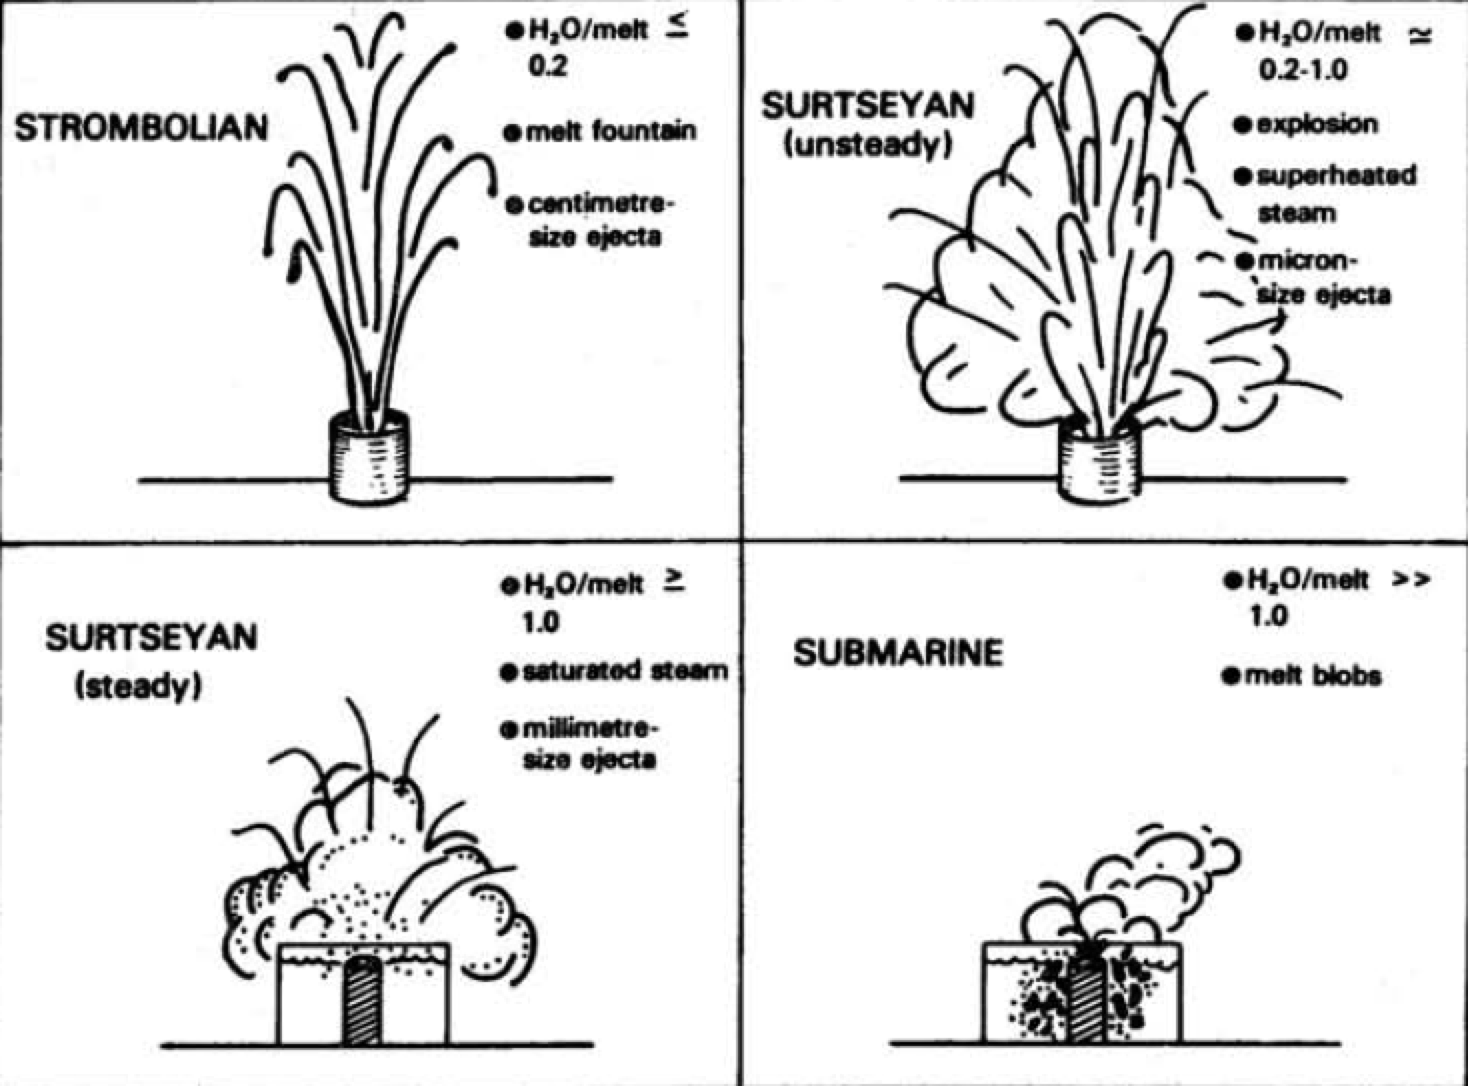 A summary figure of eruption style based on the magma to water ratio. Figure from Wohletz and McQueen (1983).